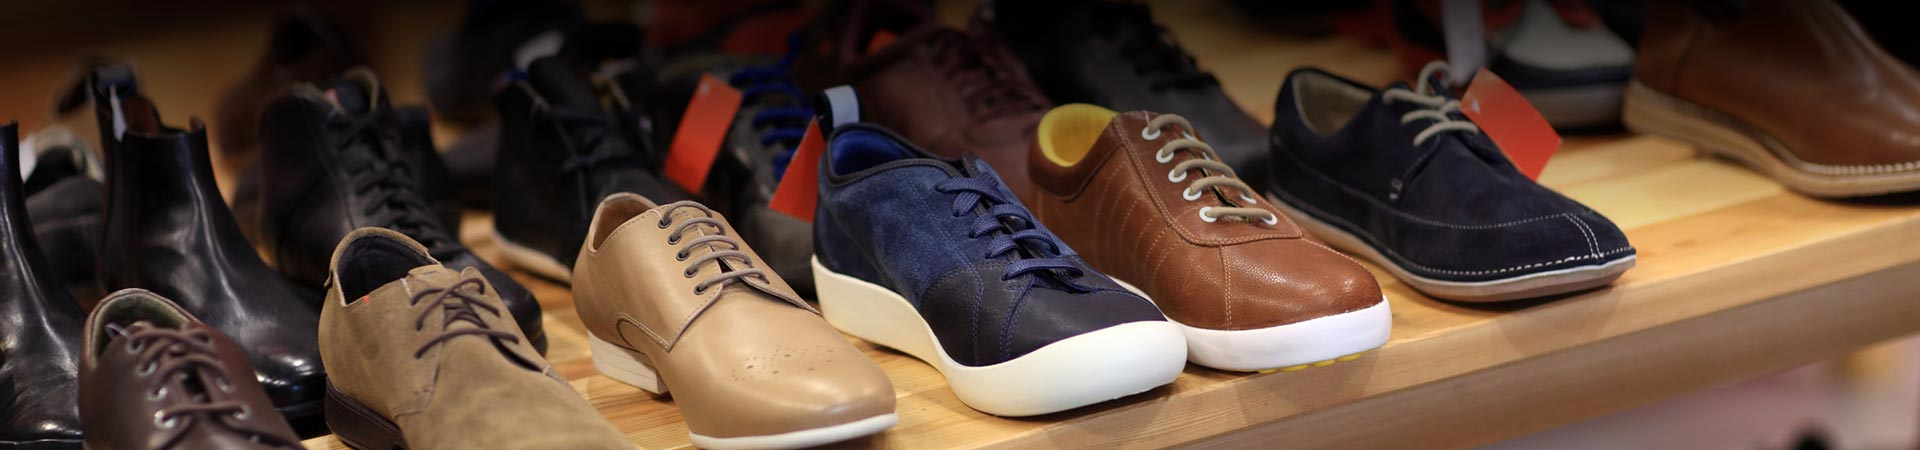 Shoe Stores ICG Software - Create my own invoice shoe stores online